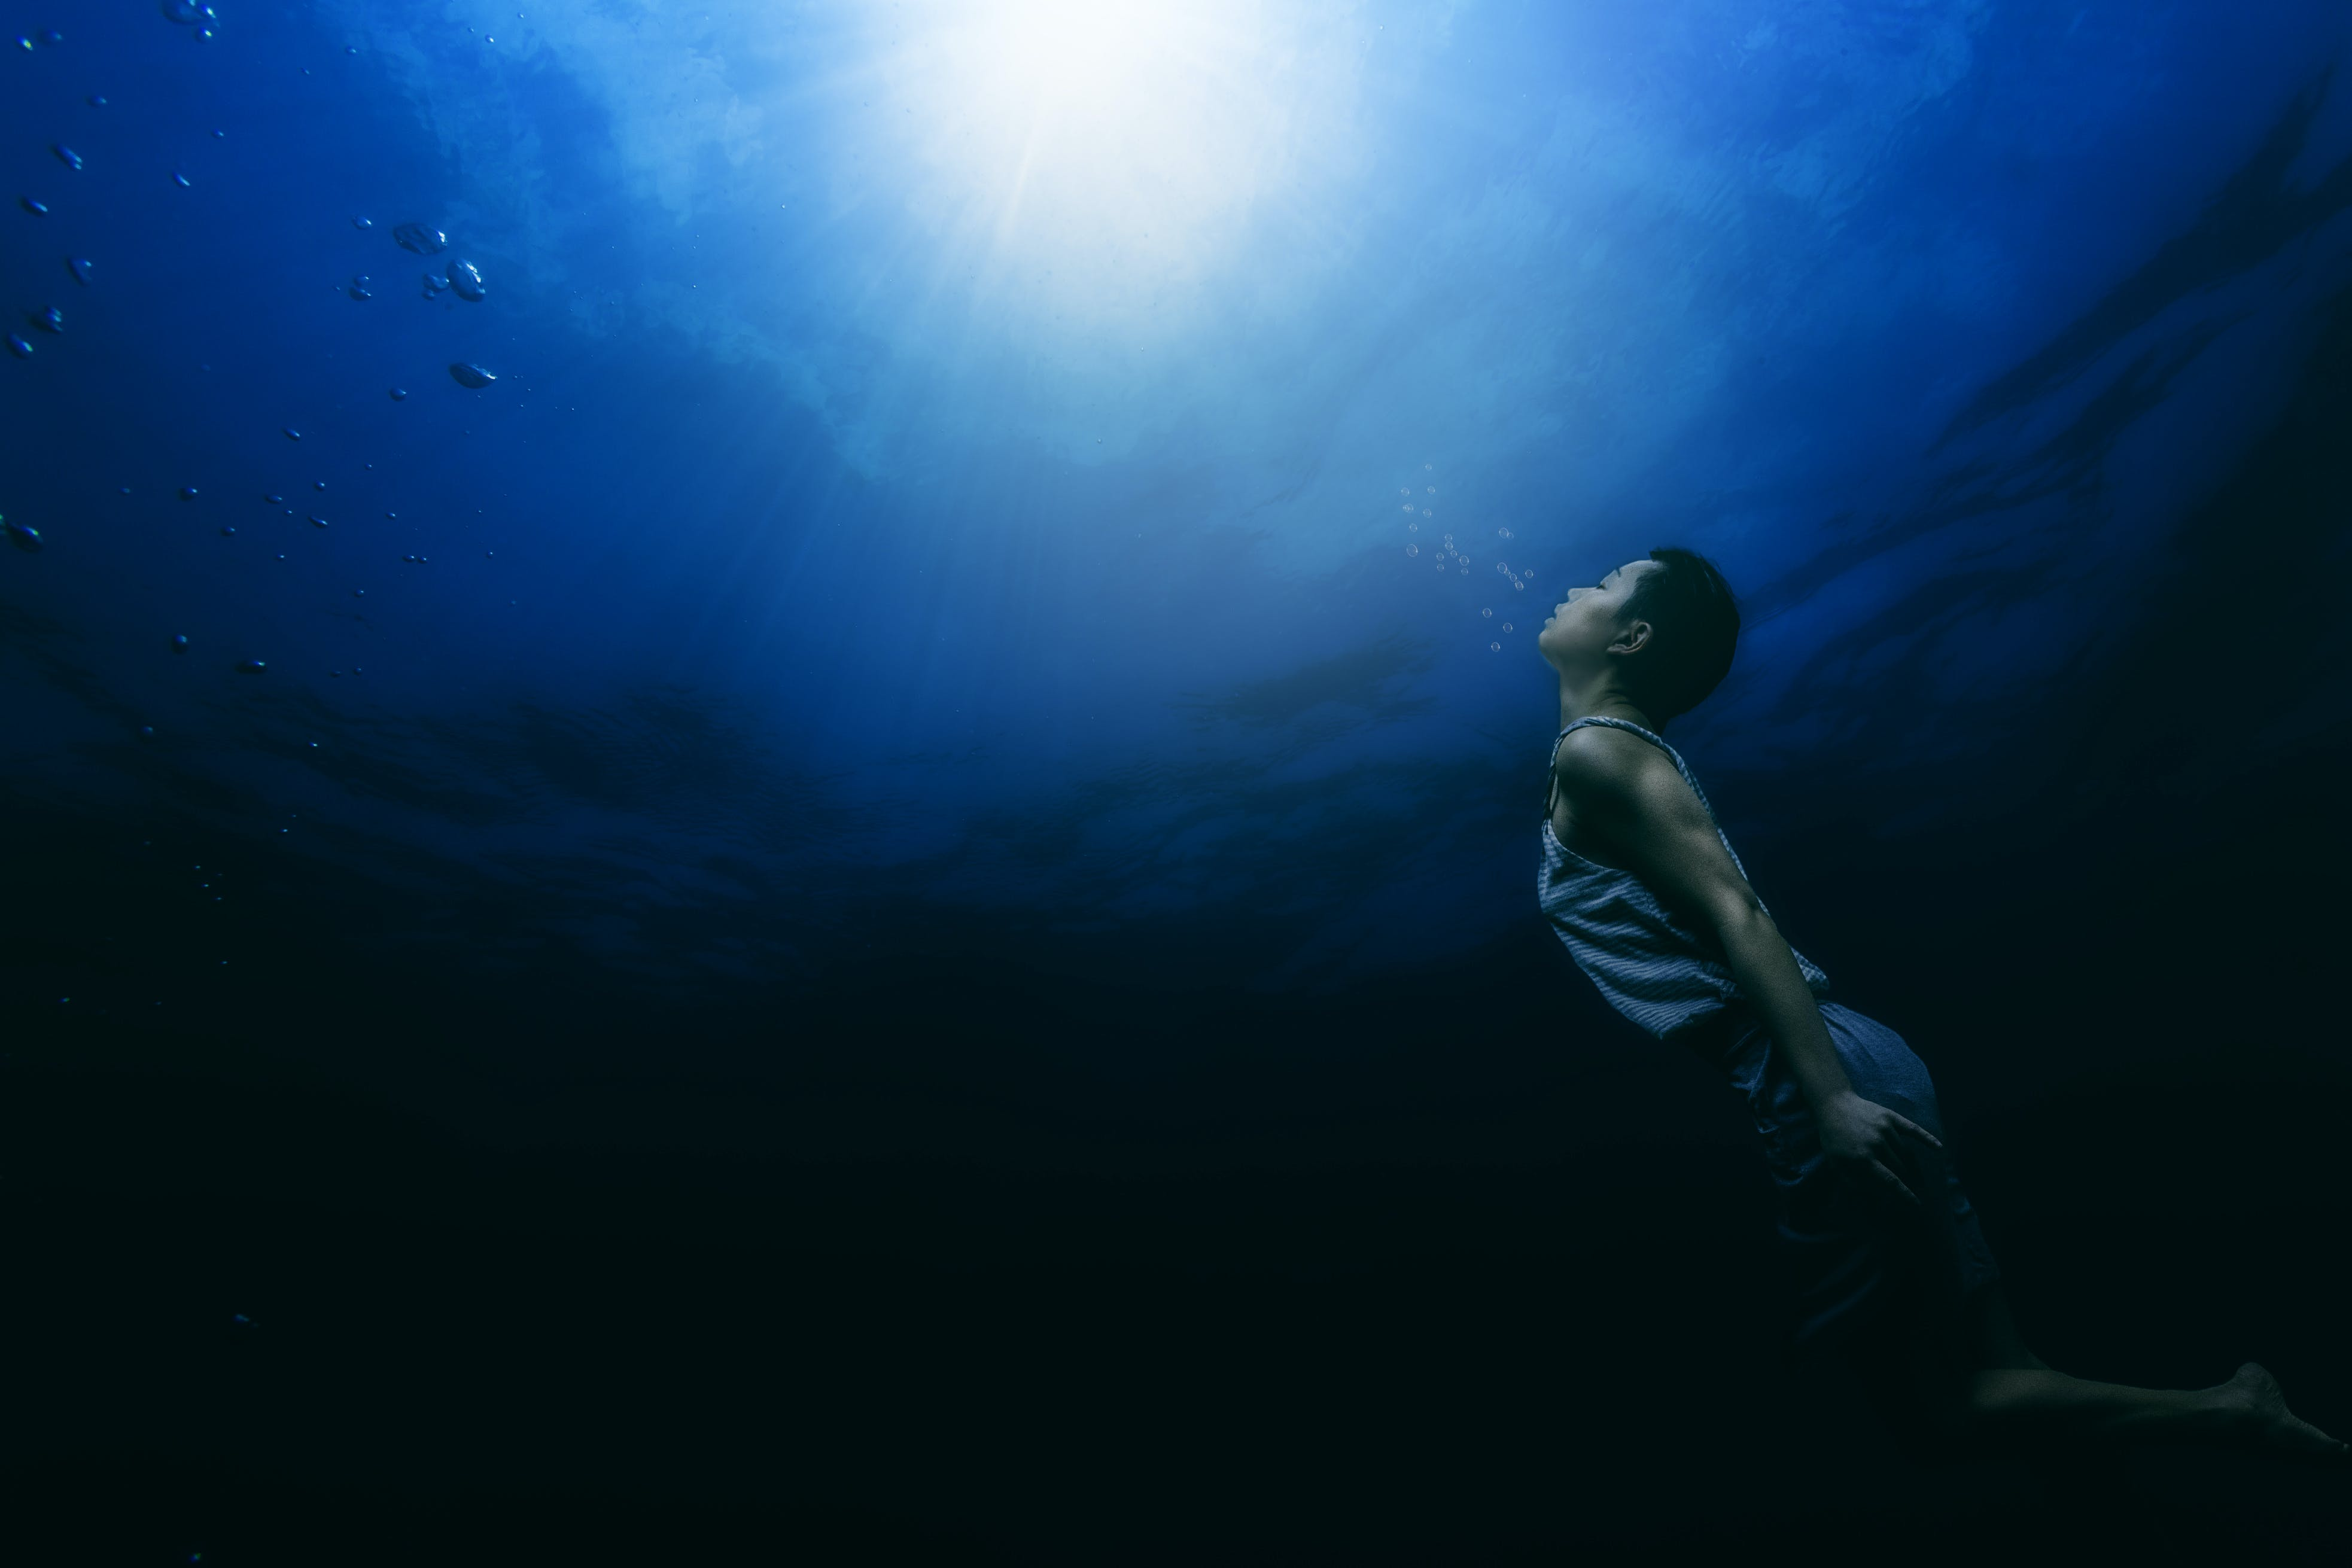 Underwater Photos: A Deep Dive Into Prep, Gear, Shooting, and Editing